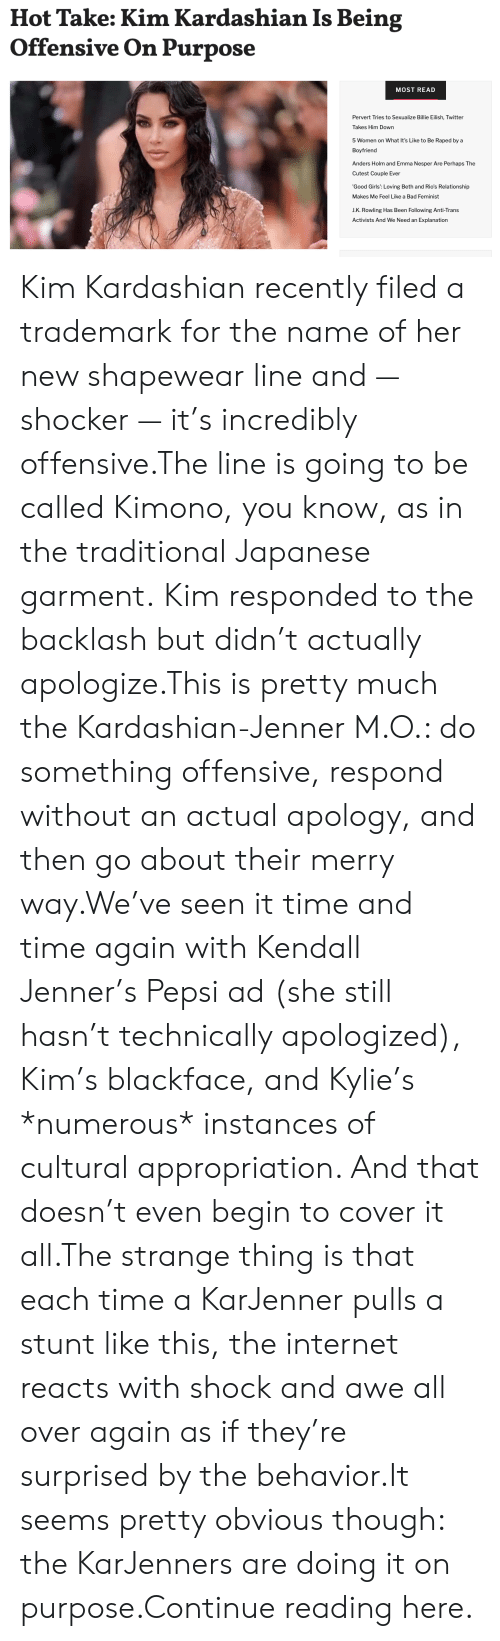 Kylie Jenner: Hot Take: Kim Kardashian Is Being  Offensive On Purpose  MOST READ  Pervert Tries to Sexualize Billie Eilish, Twitter  Takes Him Down  5 Women on What It's Like to Be Raped by a  Boyfriend  Anders Holm and Emma Nesper Are Perhaps The  Cutest Couple Ever  'Good Girls': Loving Beth and Rio's Relationship  Makes Me Feel Like a Bad Feminist  J.K. Rowling Has Been Following Anti-Trans  Activists And We Need an Explanation Kim Kardashian recently filed a trademark for the name of her new shapewear line and — shocker — it's incredibly offensive.The line is going to be called Kimono, you know, as in the traditional Japanese garment. Kim responded to the backlash but didn't actually apologize.This is pretty much the Kardashian-Jenner M.O.: do something offensive, respond without an actual apology, and then go about their merry way.We've seen it time and time again with Kendall Jenner's Pepsi ad (she still hasn't technically apologized), Kim's blackface, and Kylie's *numerous* instances of cultural appropriation. And that doesn't even begin to cover it all.The strange thing is that each time a KarJenner pulls a stunt like this, the internet reacts with shock and awe all over again as if they're surprised by the behavior.It seems pretty obvious though: the KarJenners are doing it on purpose.Continue reading here.